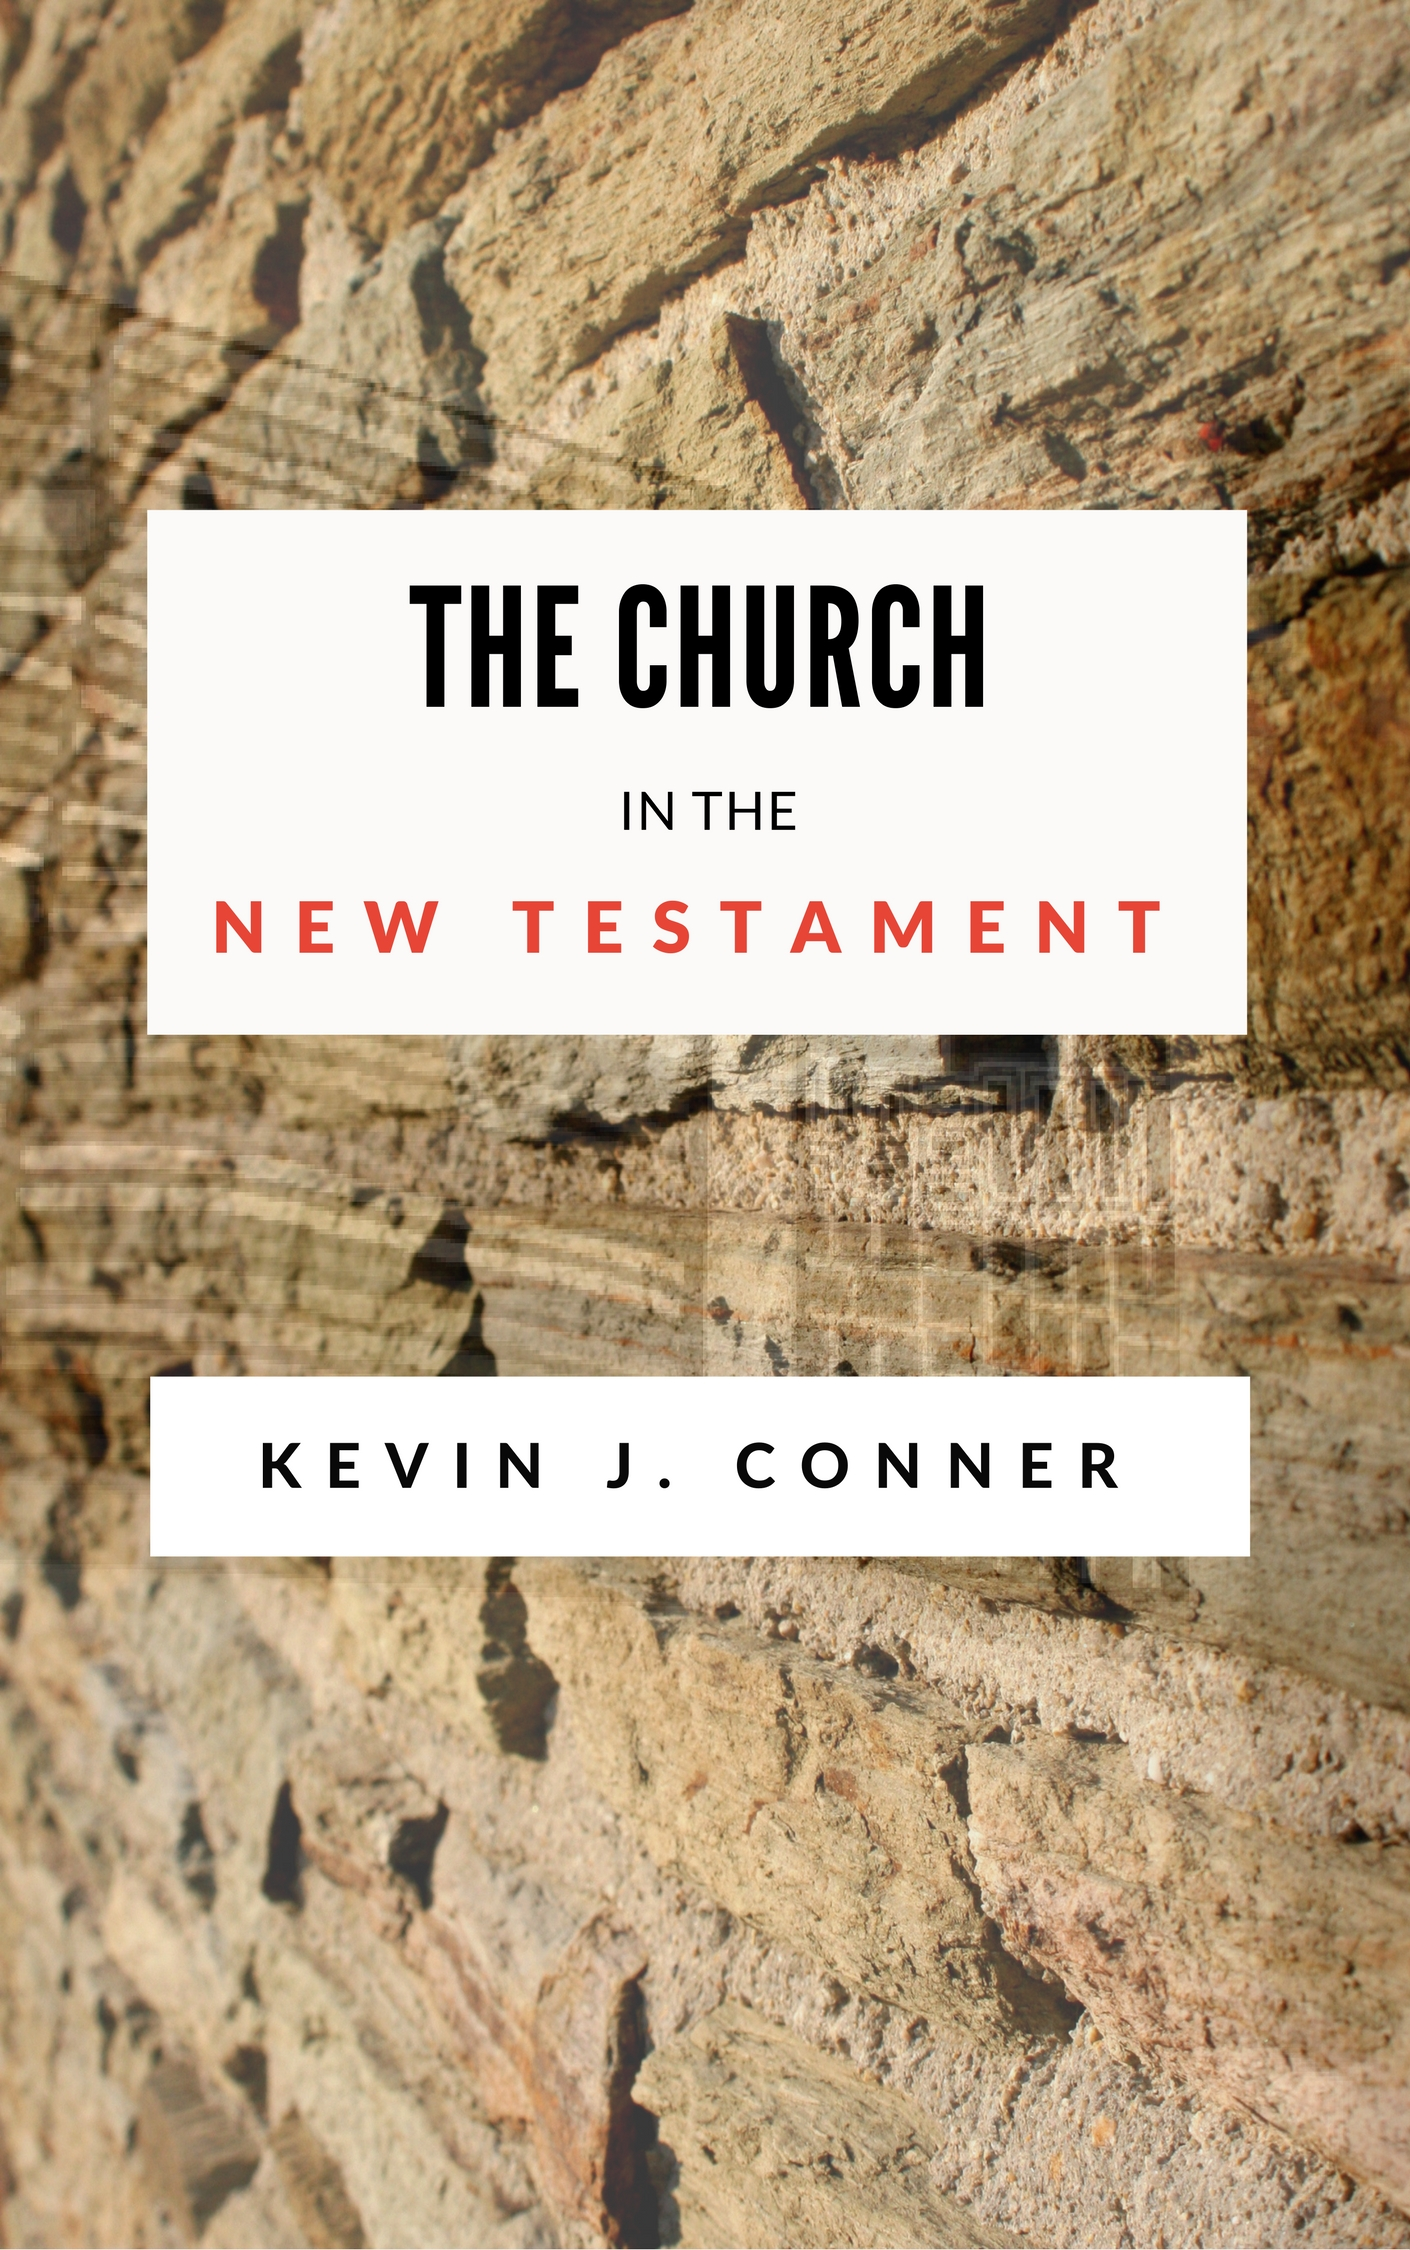 Kevin Conner's Best-Selling Book on the Church in the New Testament now on Kindle